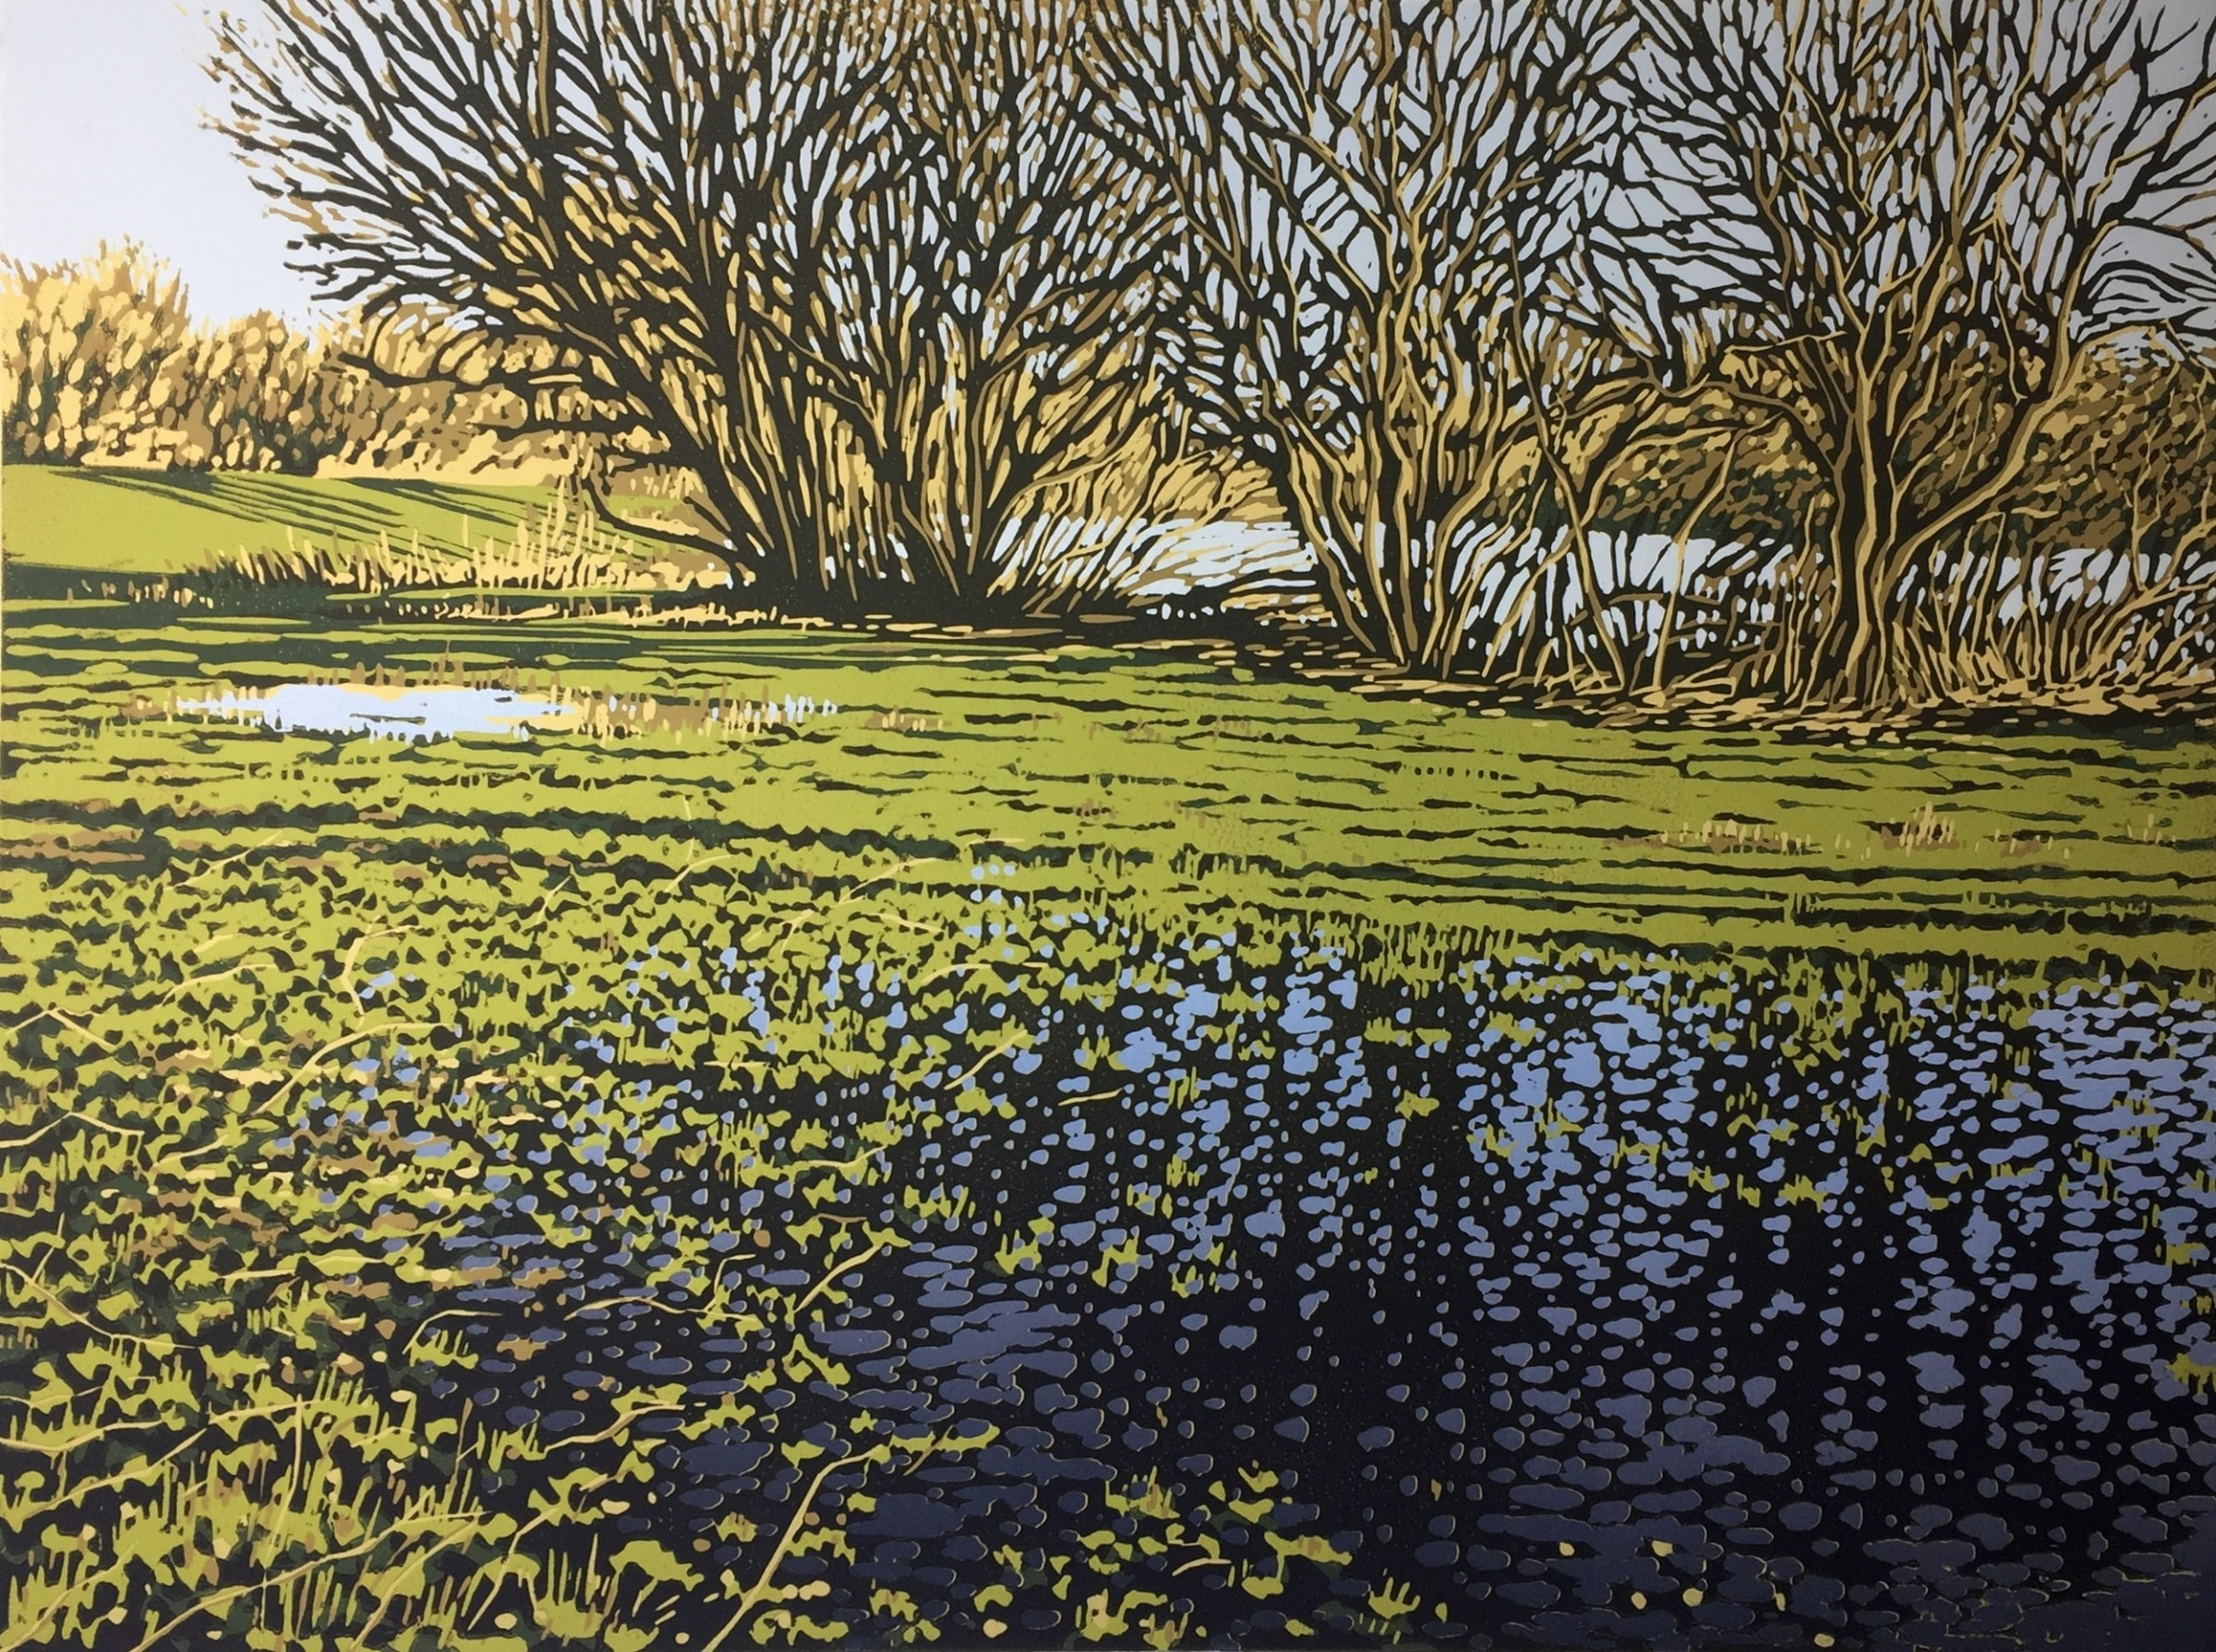 "<span class=""link fancybox-details-link""><a href=""/exhibitions/18/works/image_standalone971/"">View Detail Page</a></span><p>Alexandra Buckle</p><p>Lakeside Puddles</p><p>linocut</p><p>44 x 54cm</p><p>£380 framed</p><p>£320 unframed</p>"